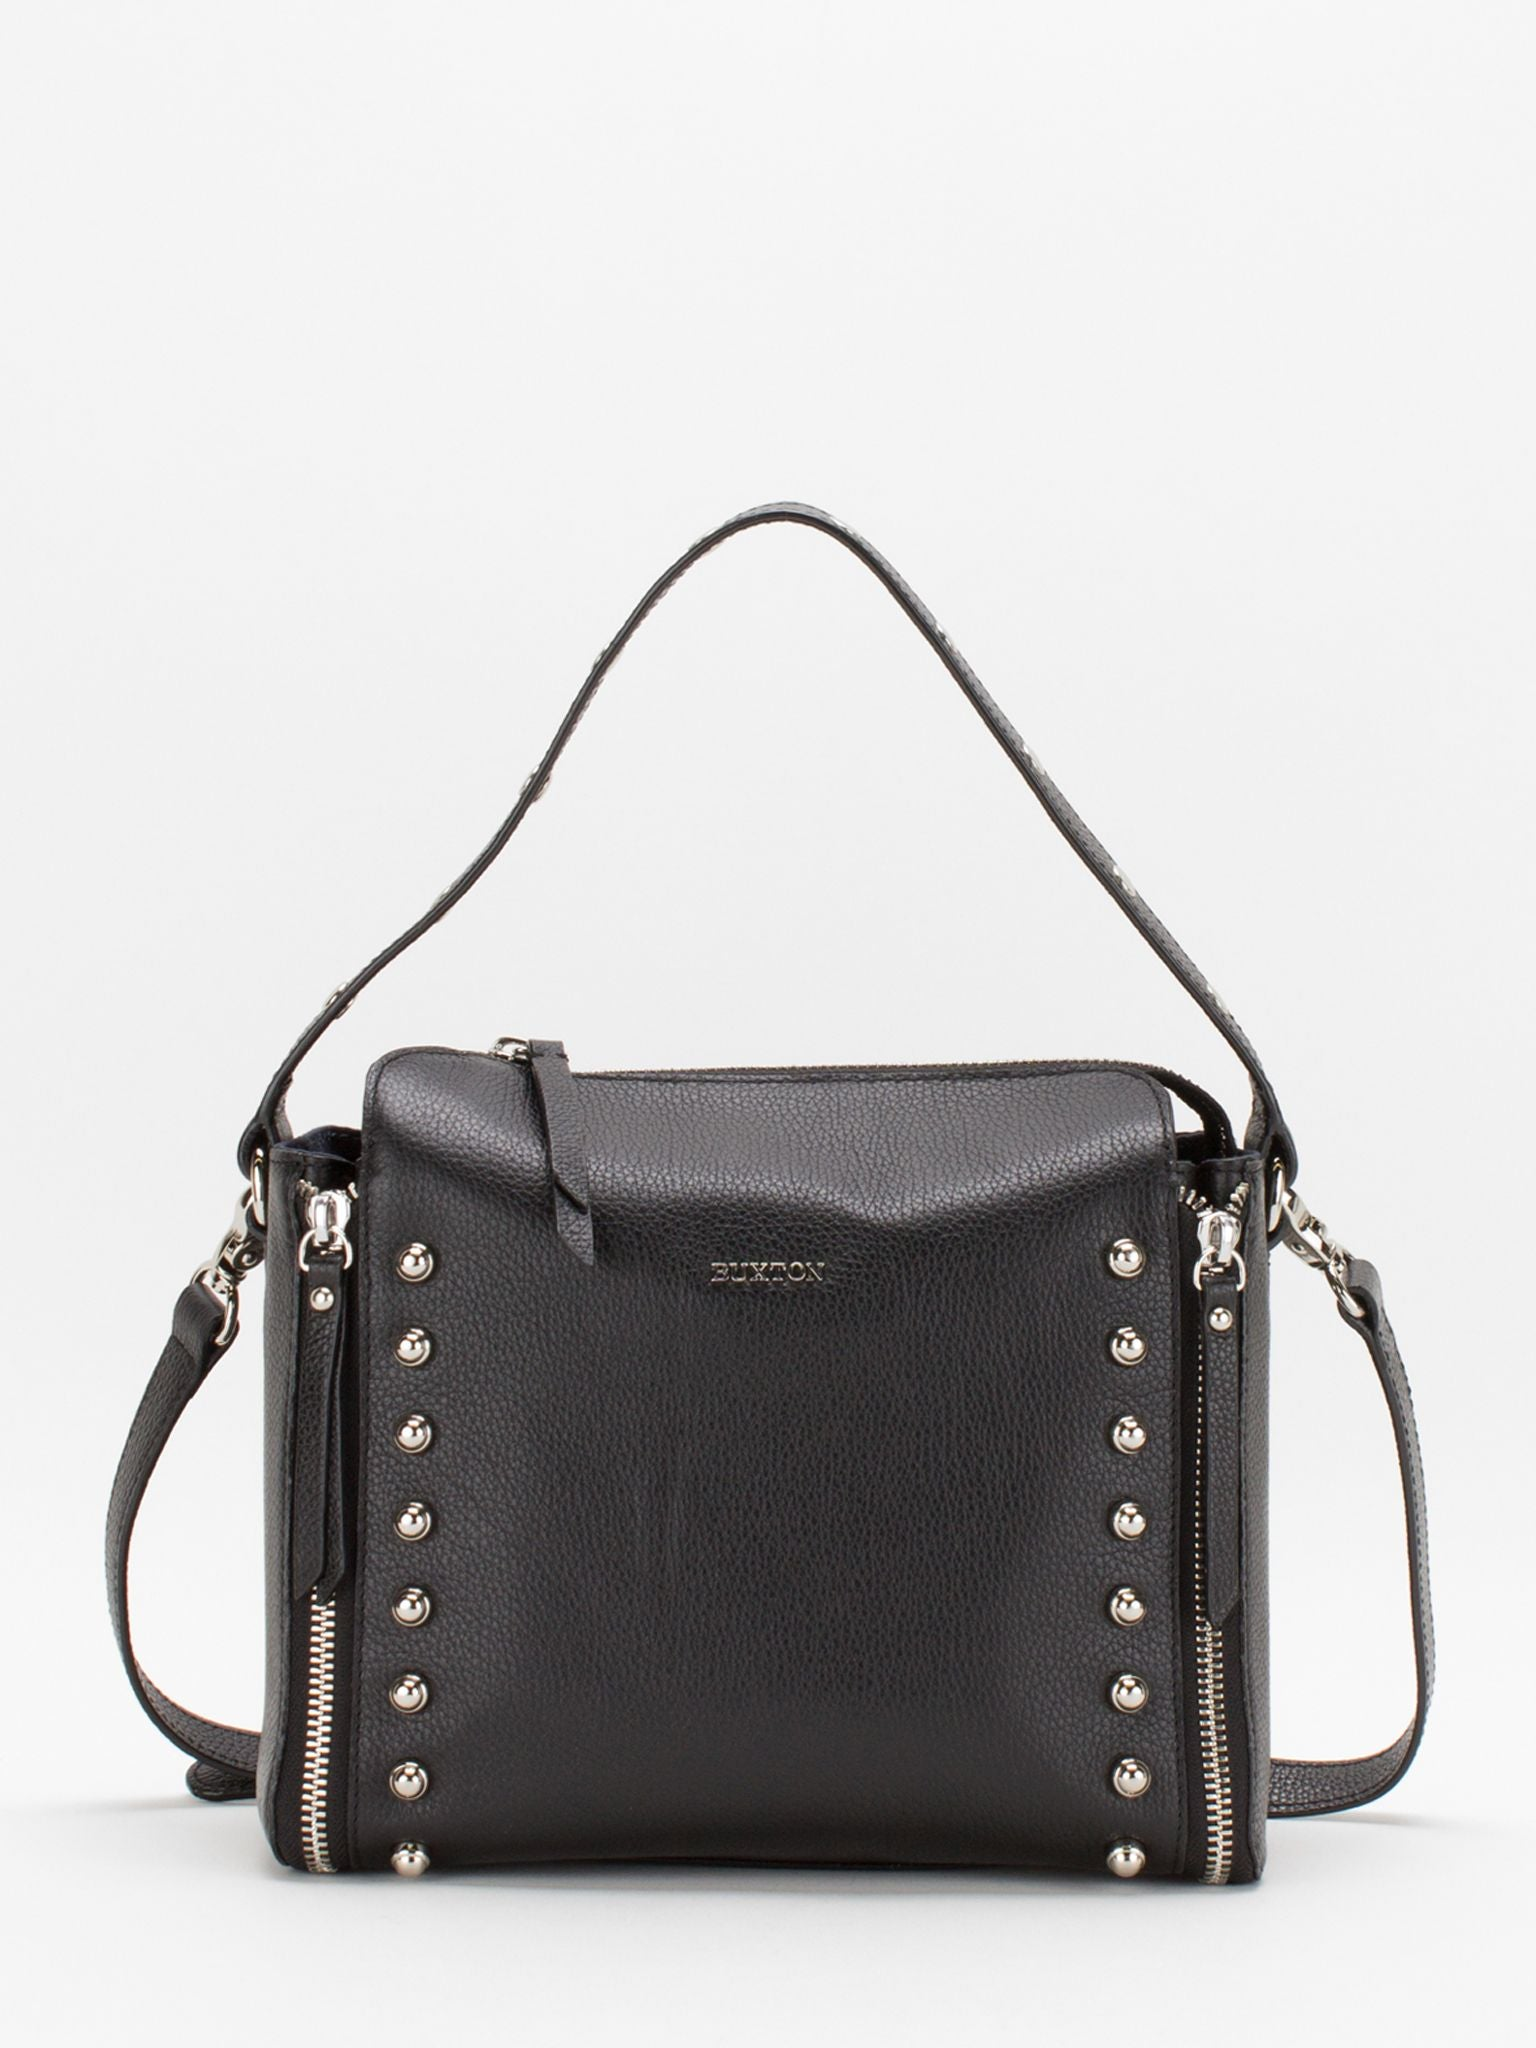 Hallie Studs Accent Leather Bag - Black